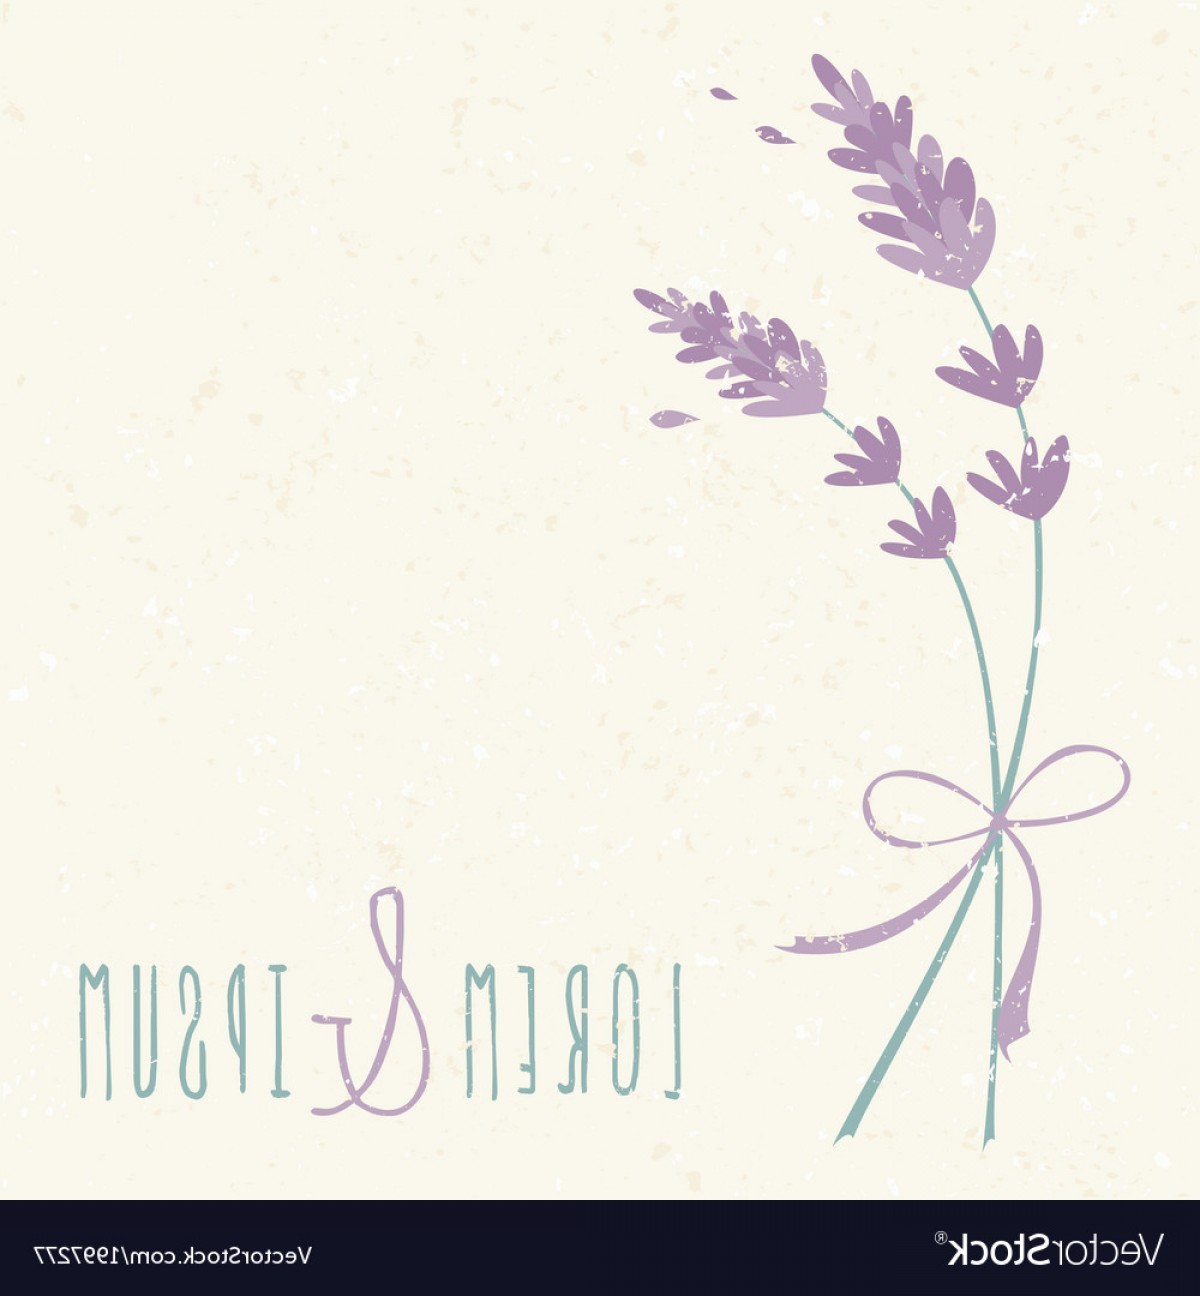 Lilac Wedding Vectors: Wedding Day Design Invitation Lavender Flowers Vector